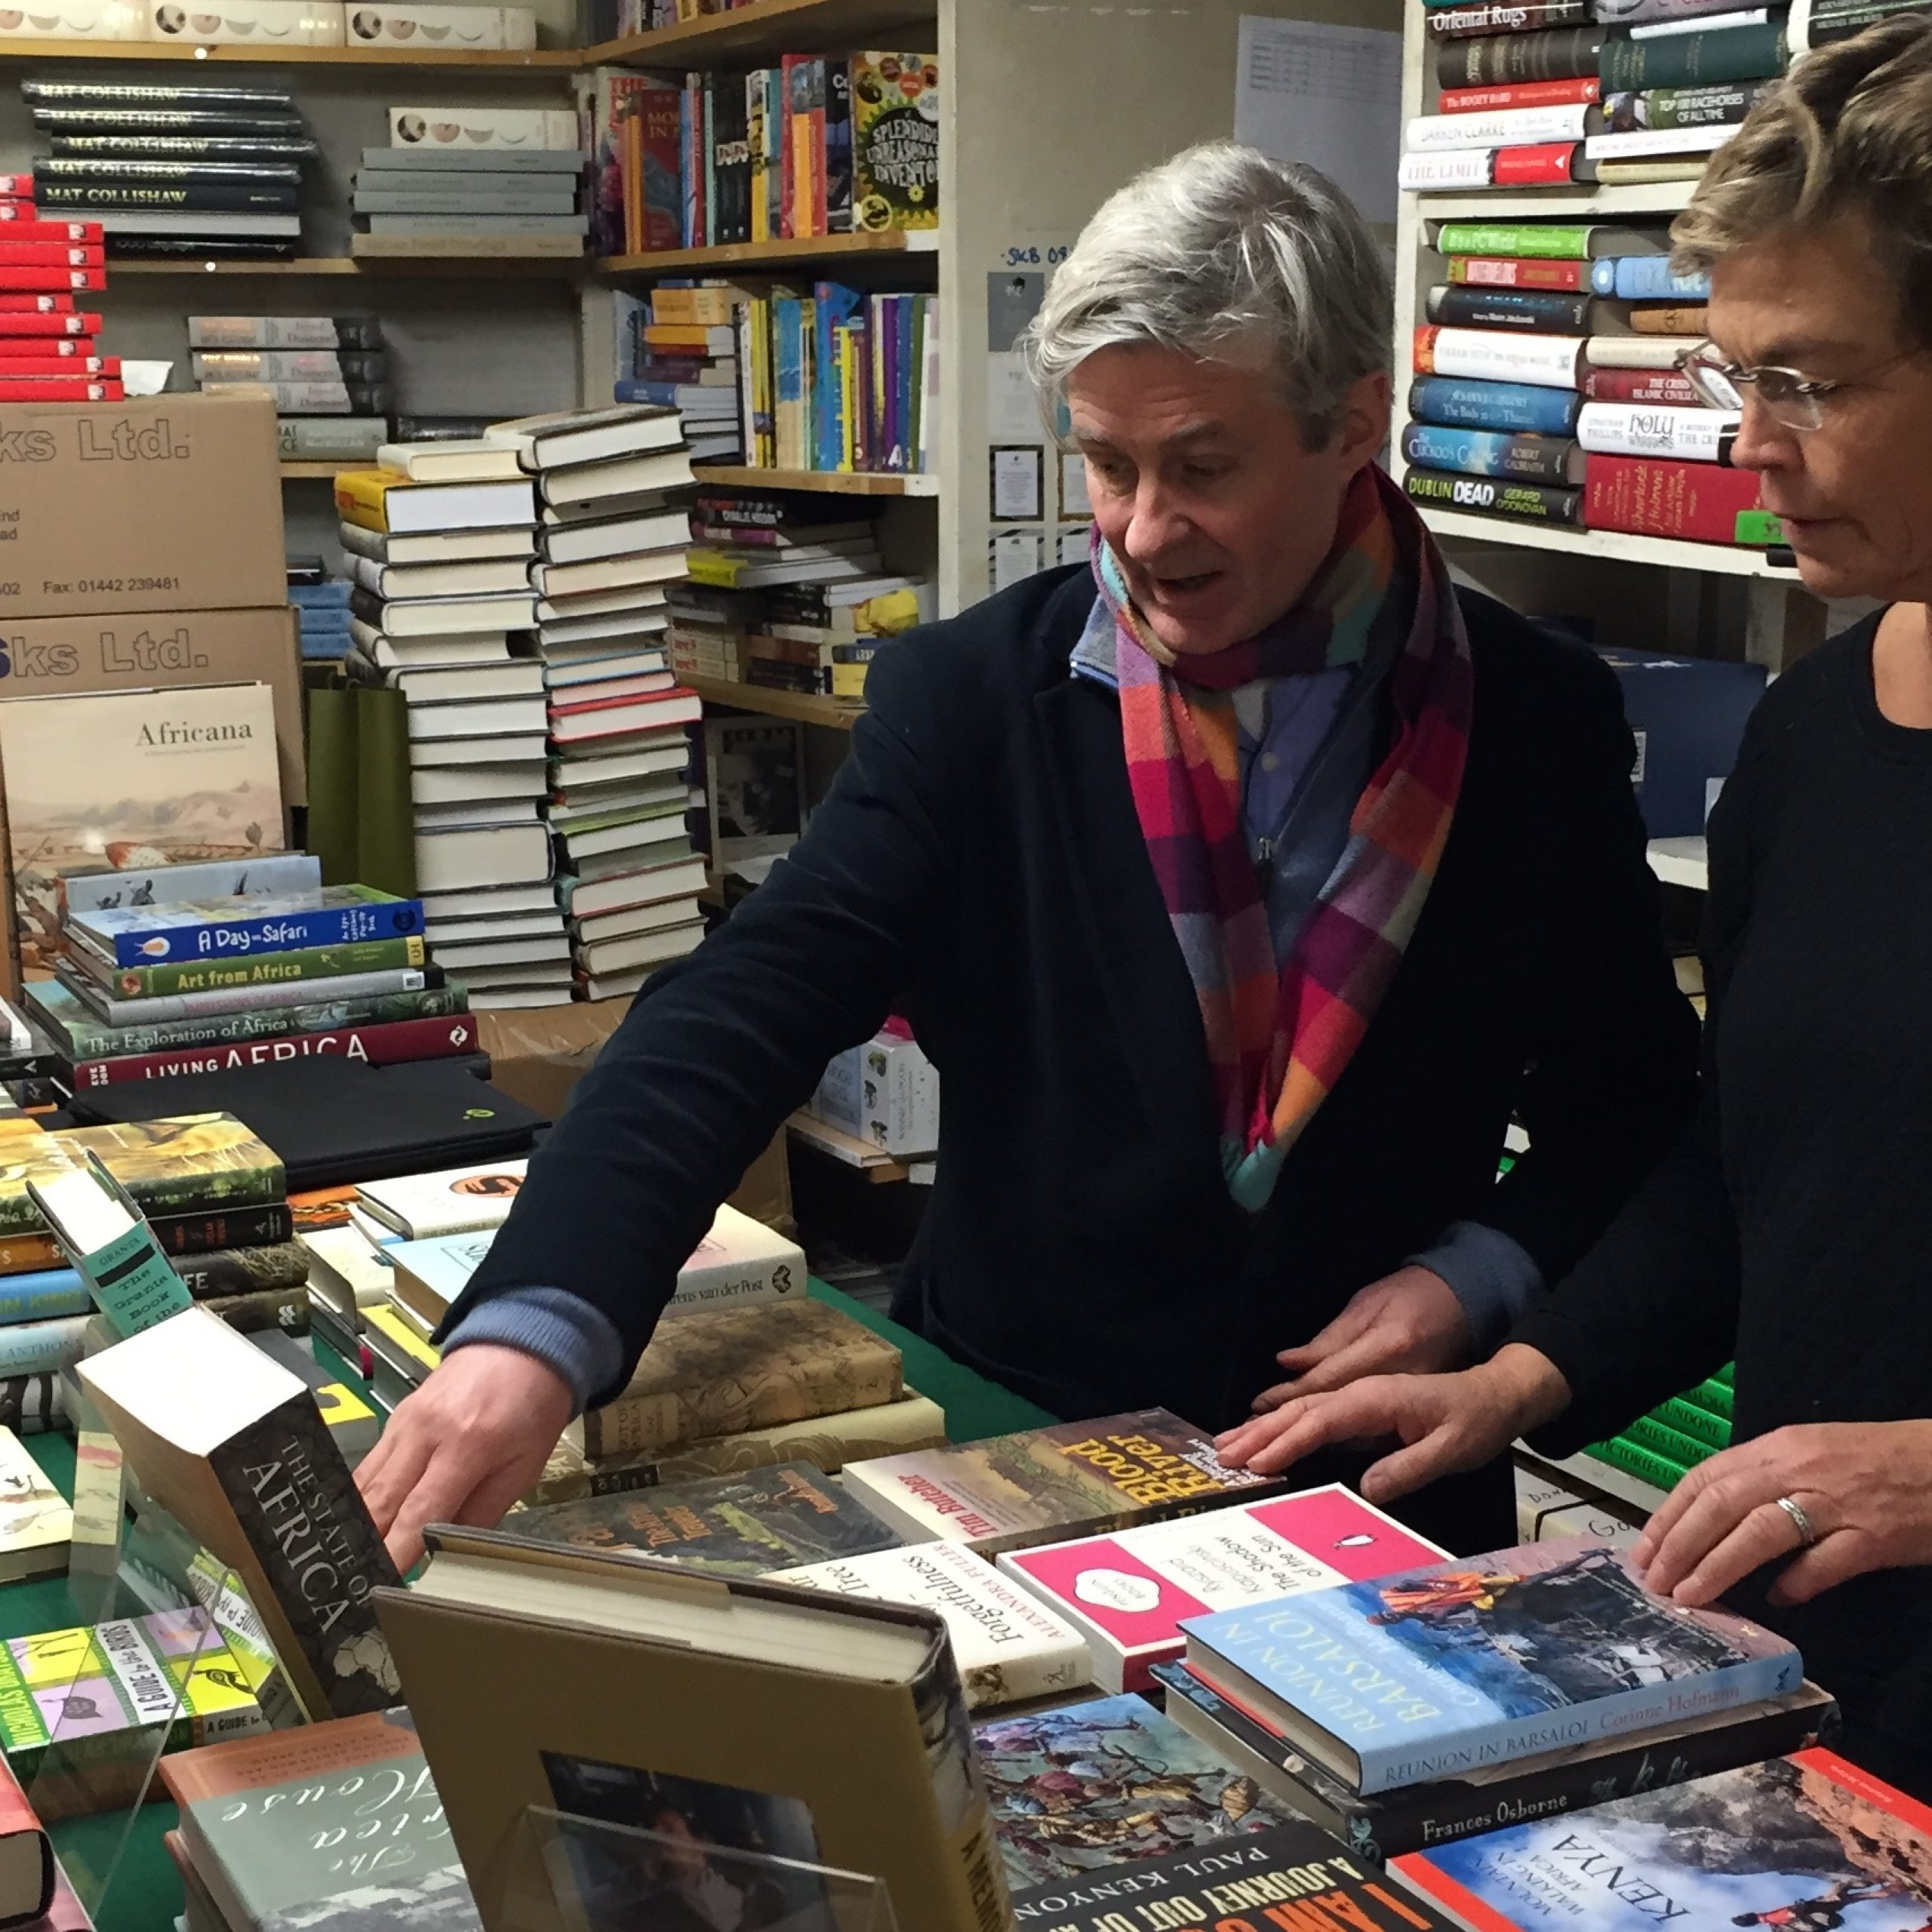 Nicky and Philip choosing books!